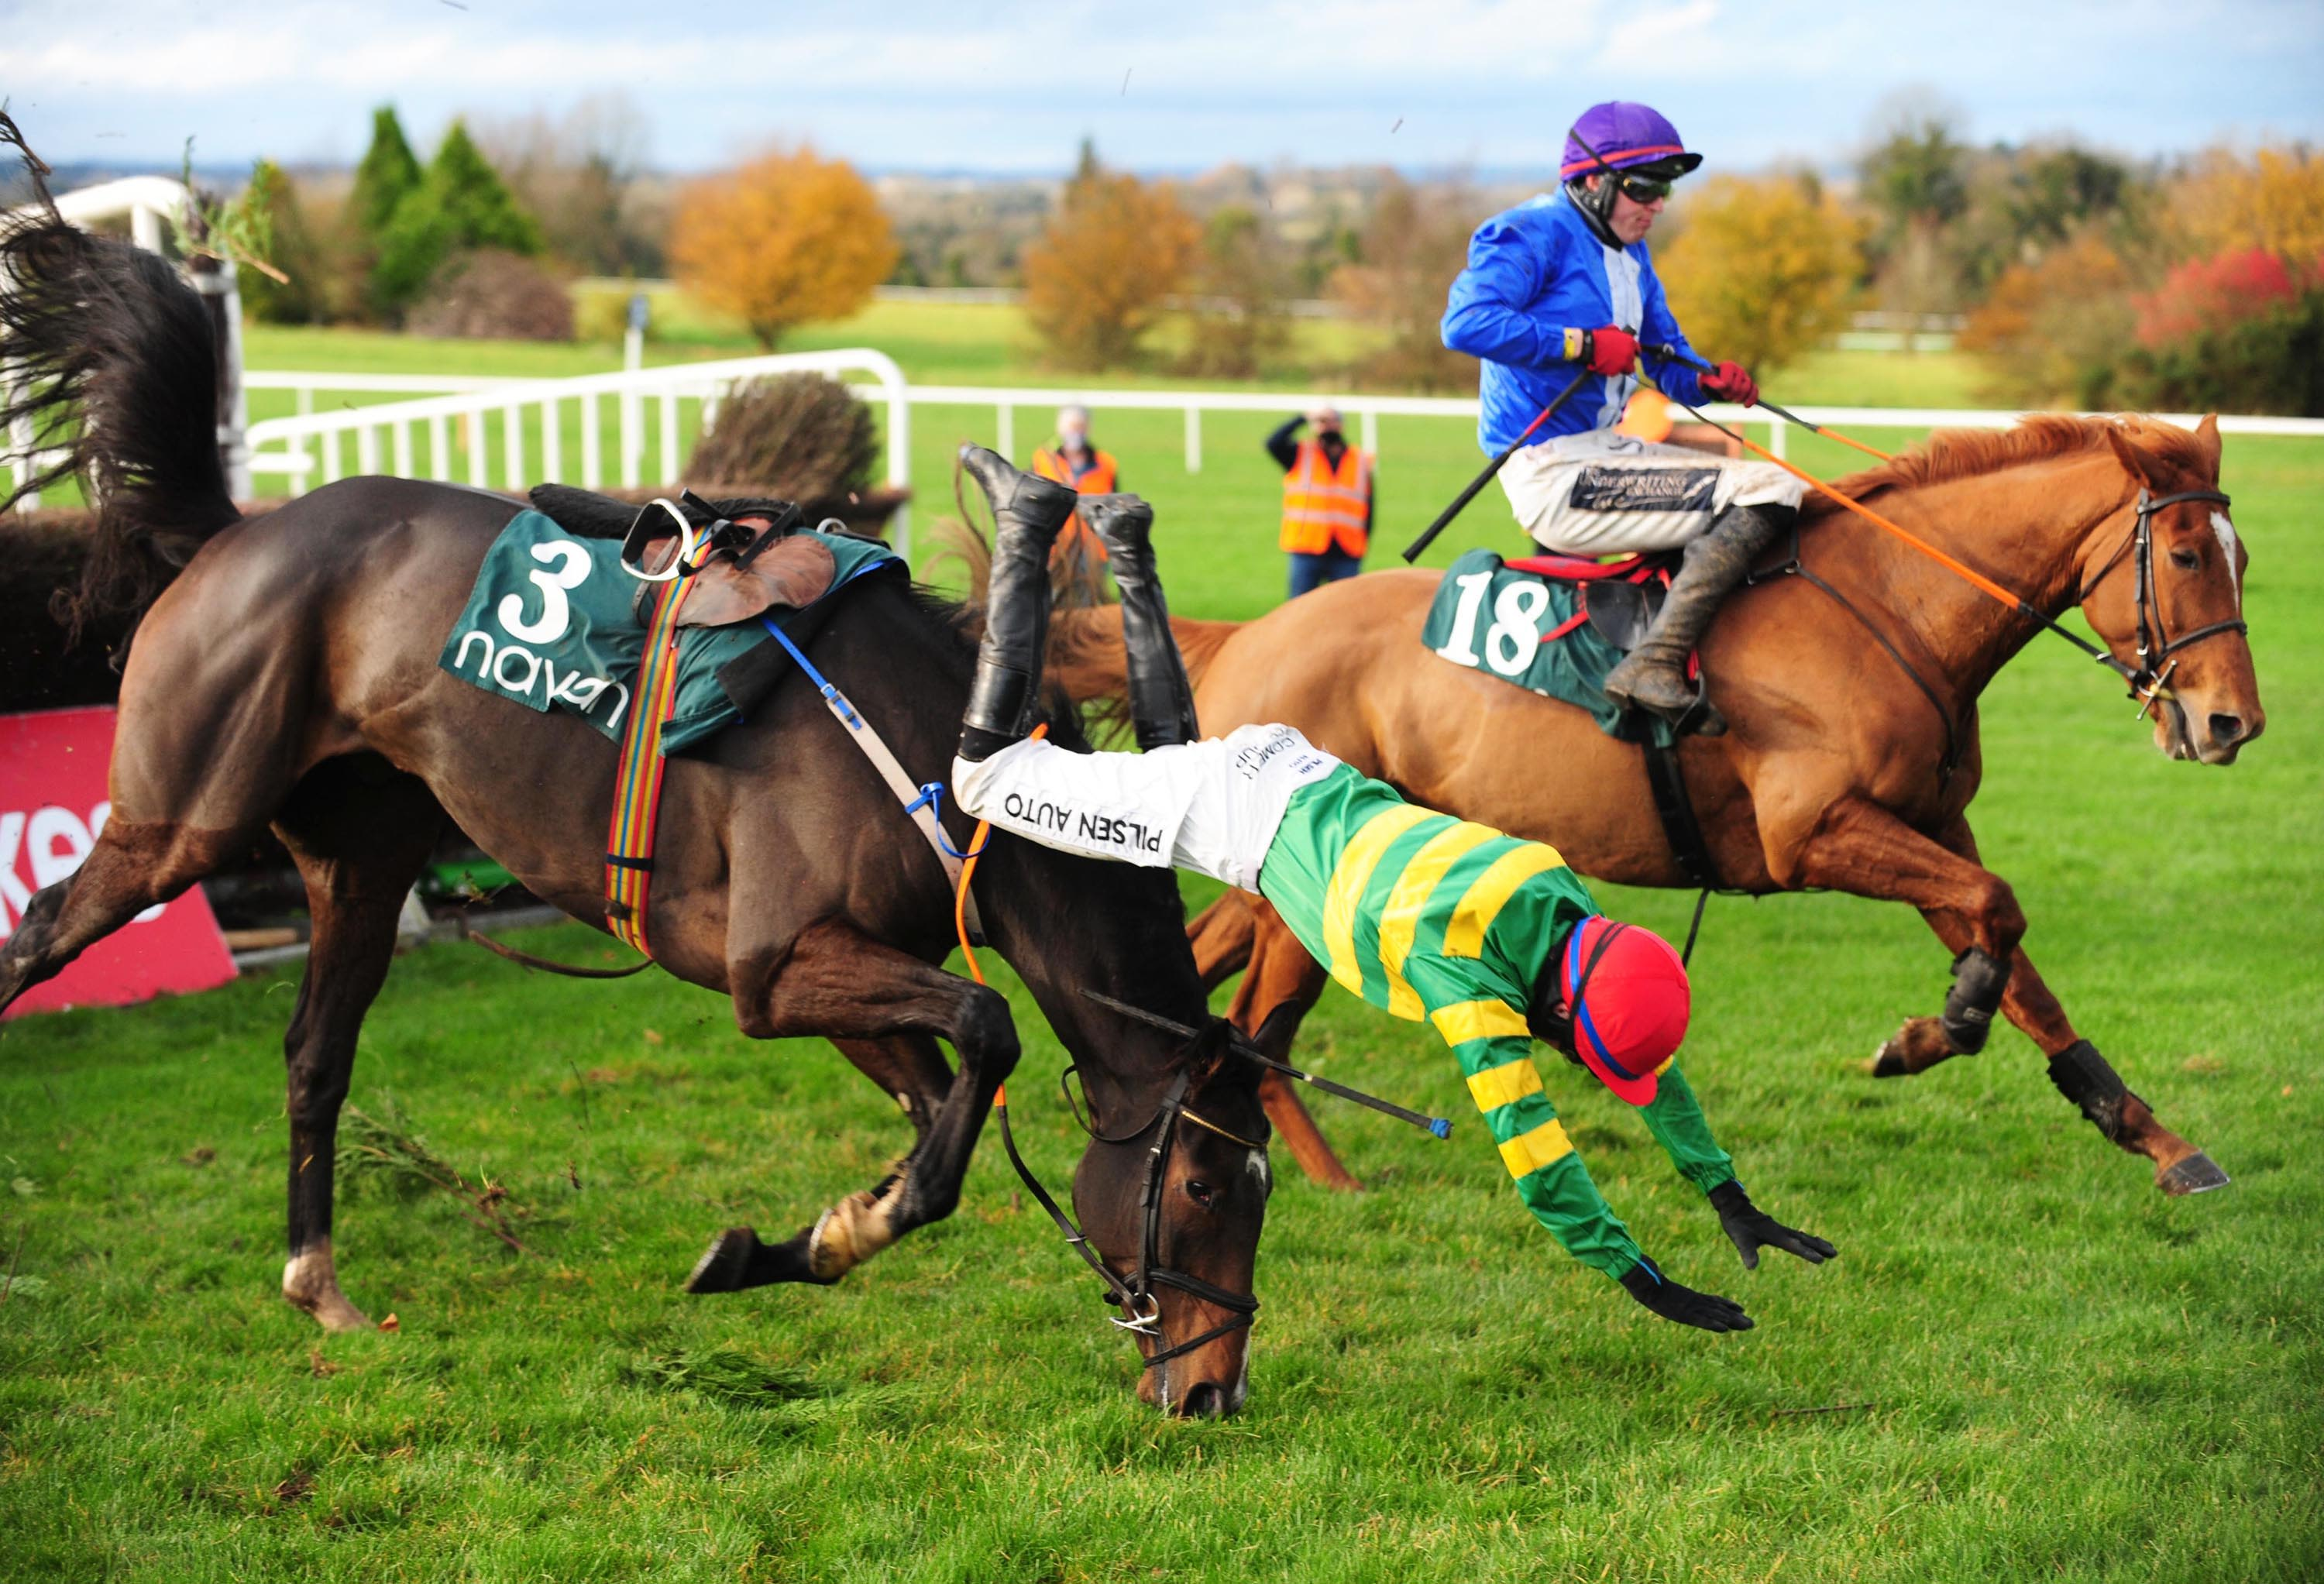 Conditional jockey Conor McNamara parted company with Donkey Years in spectacular fashion in the beginners' chase. The rider was unscathed and won the next race on 16/1 chance Youngnedonthehill. (Focusonracing)